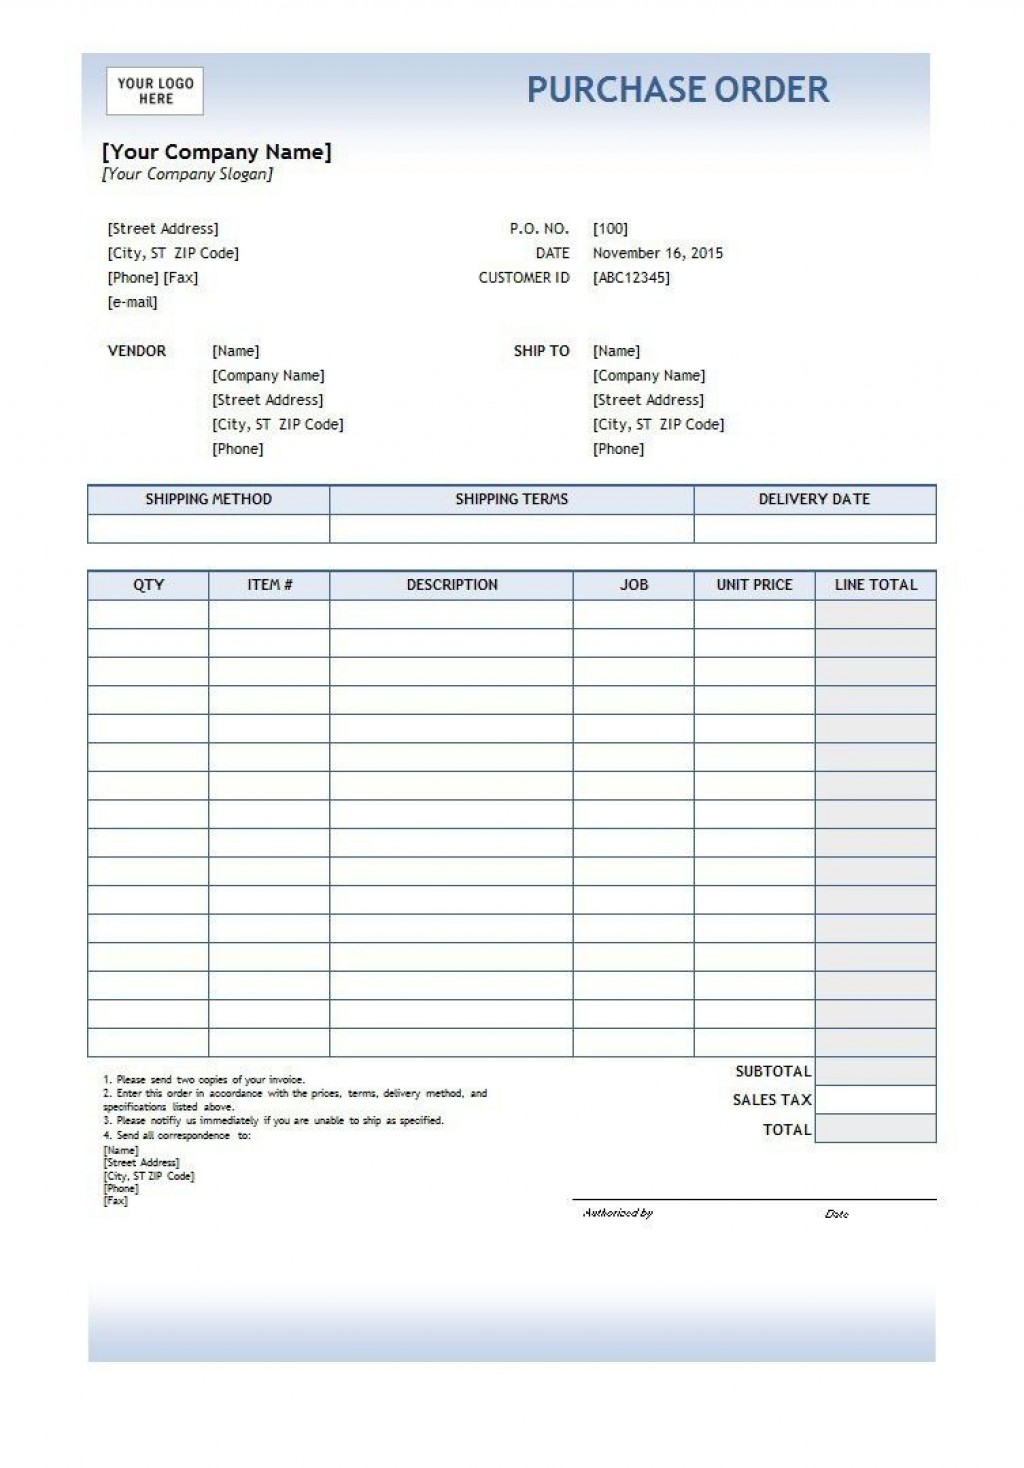 002 Best Free Purchase Order Template Word Image  Microsoft DownloadLarge